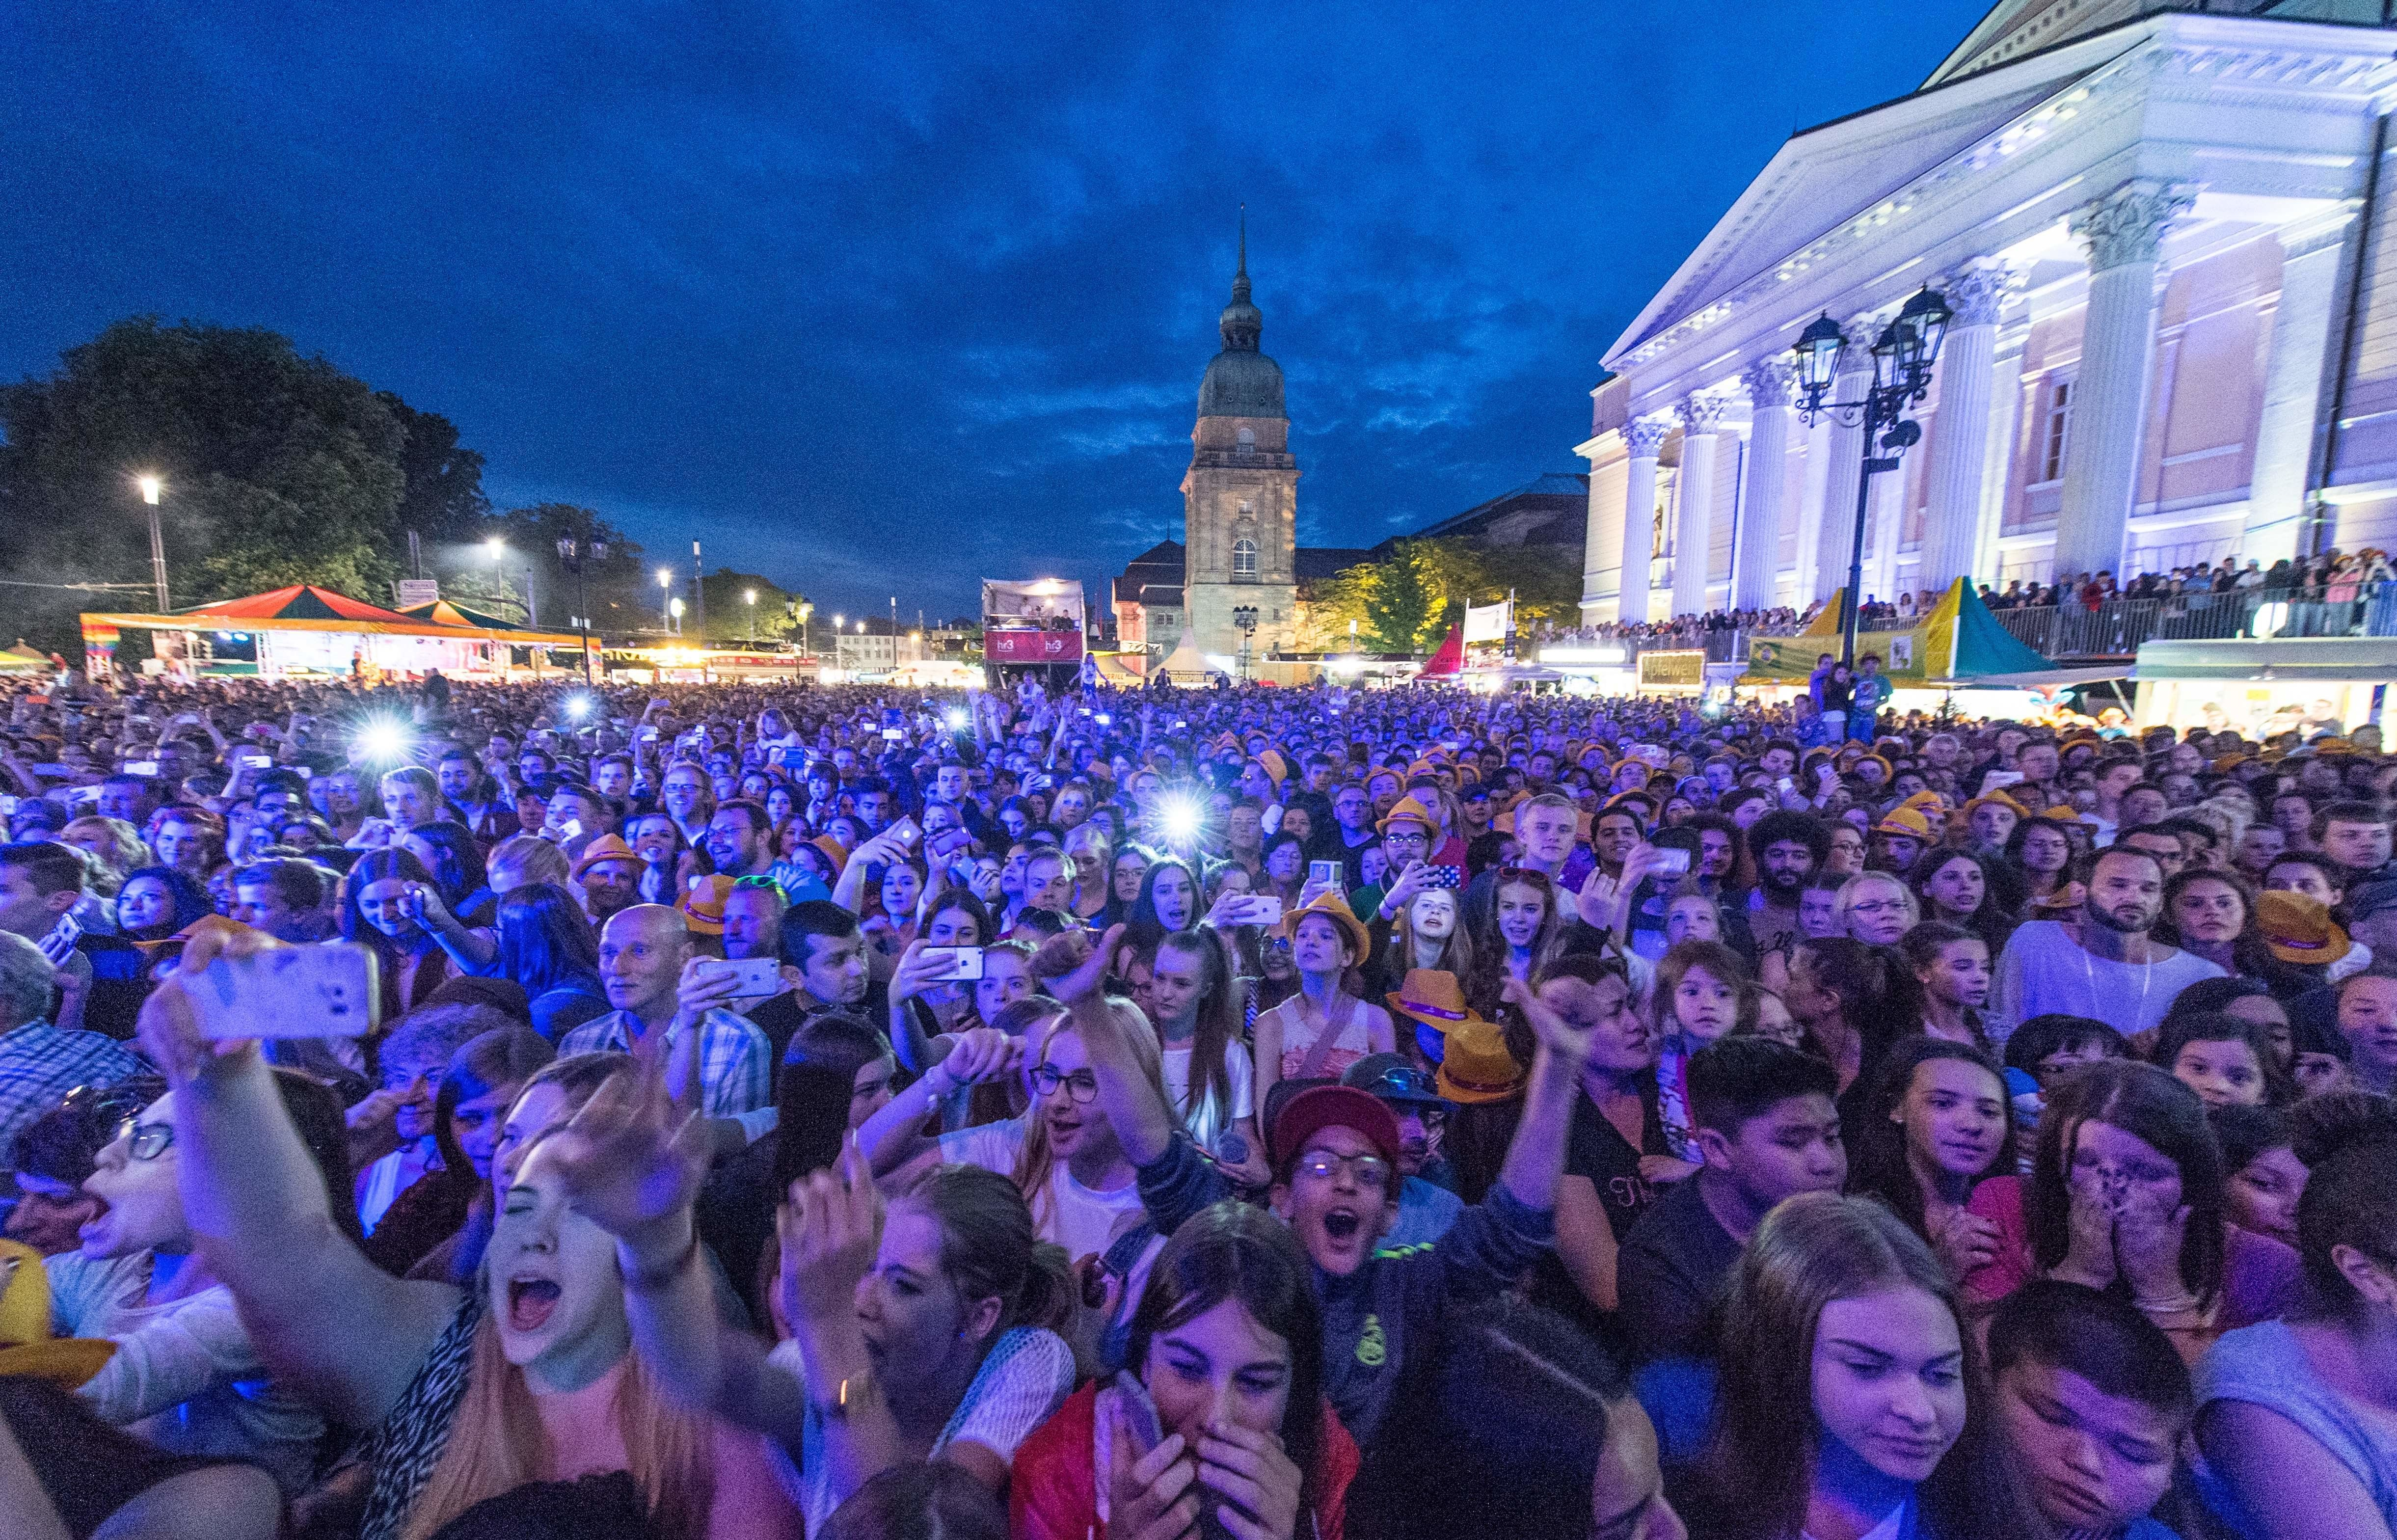 German police arrested three menafter dozens ofwomen made complaints of sexual assaults at the Schlossgrabenfest